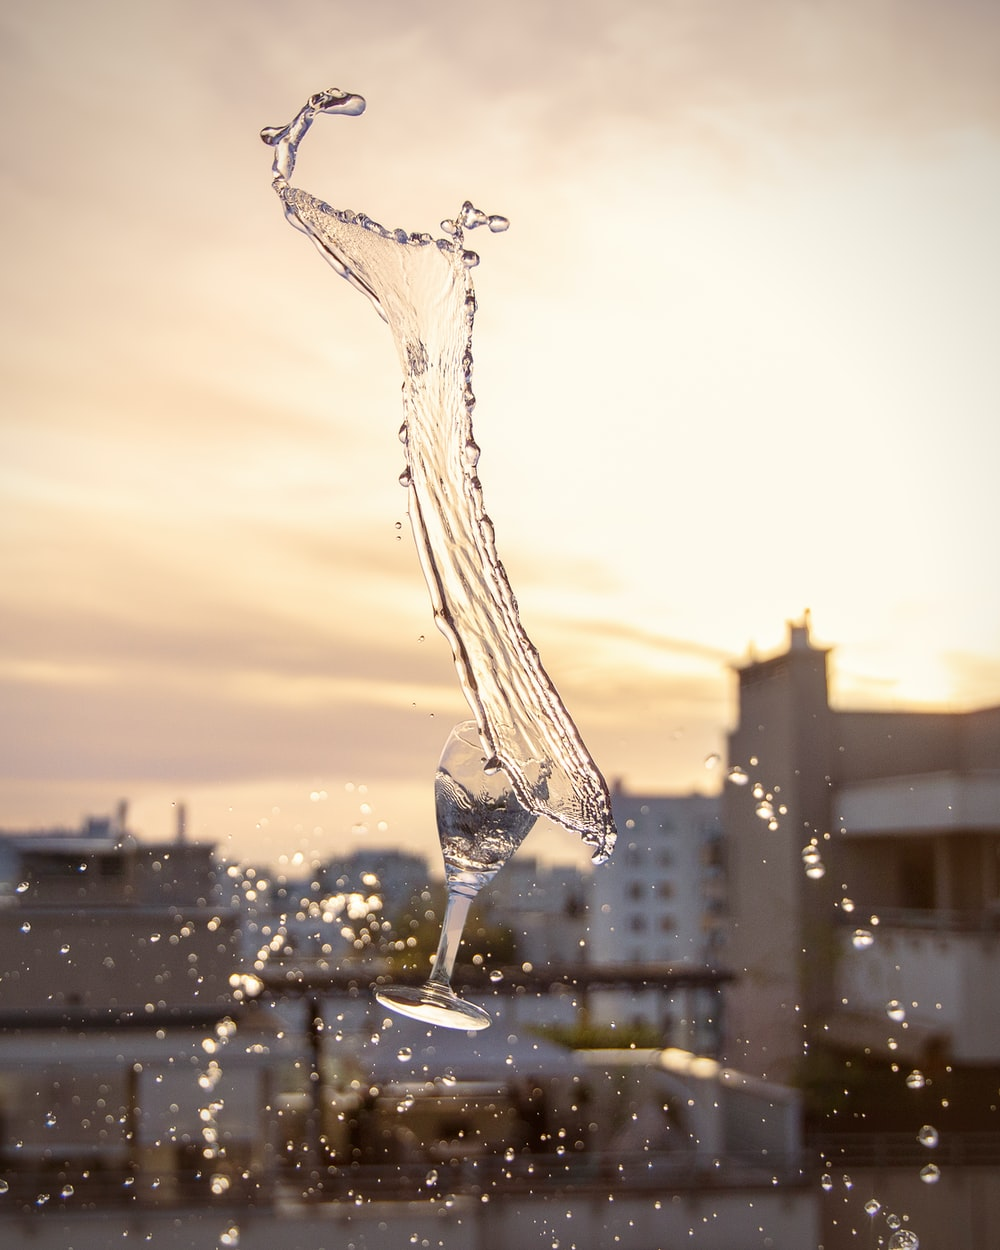 water drop on glass during sunset